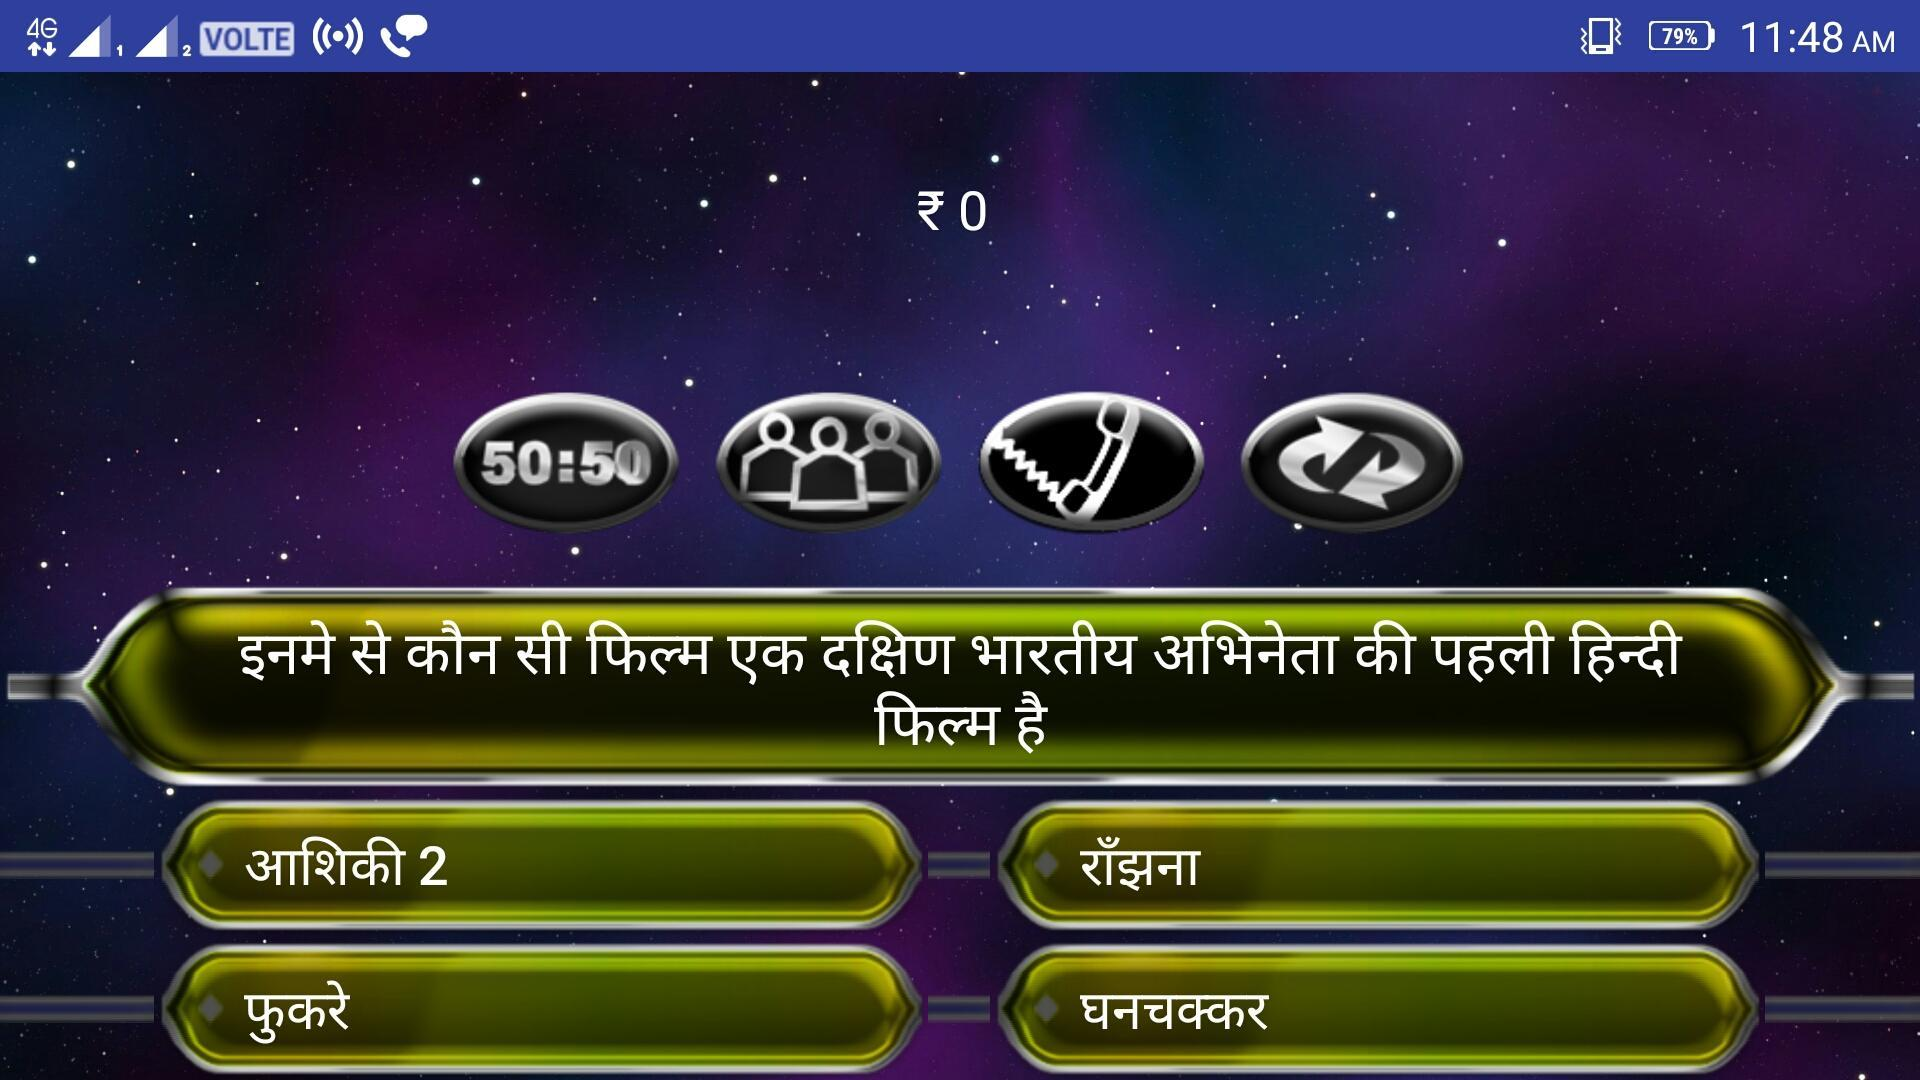 Kaun Banega Crorepati - KBC Hindi 2017 for Android - APK Download